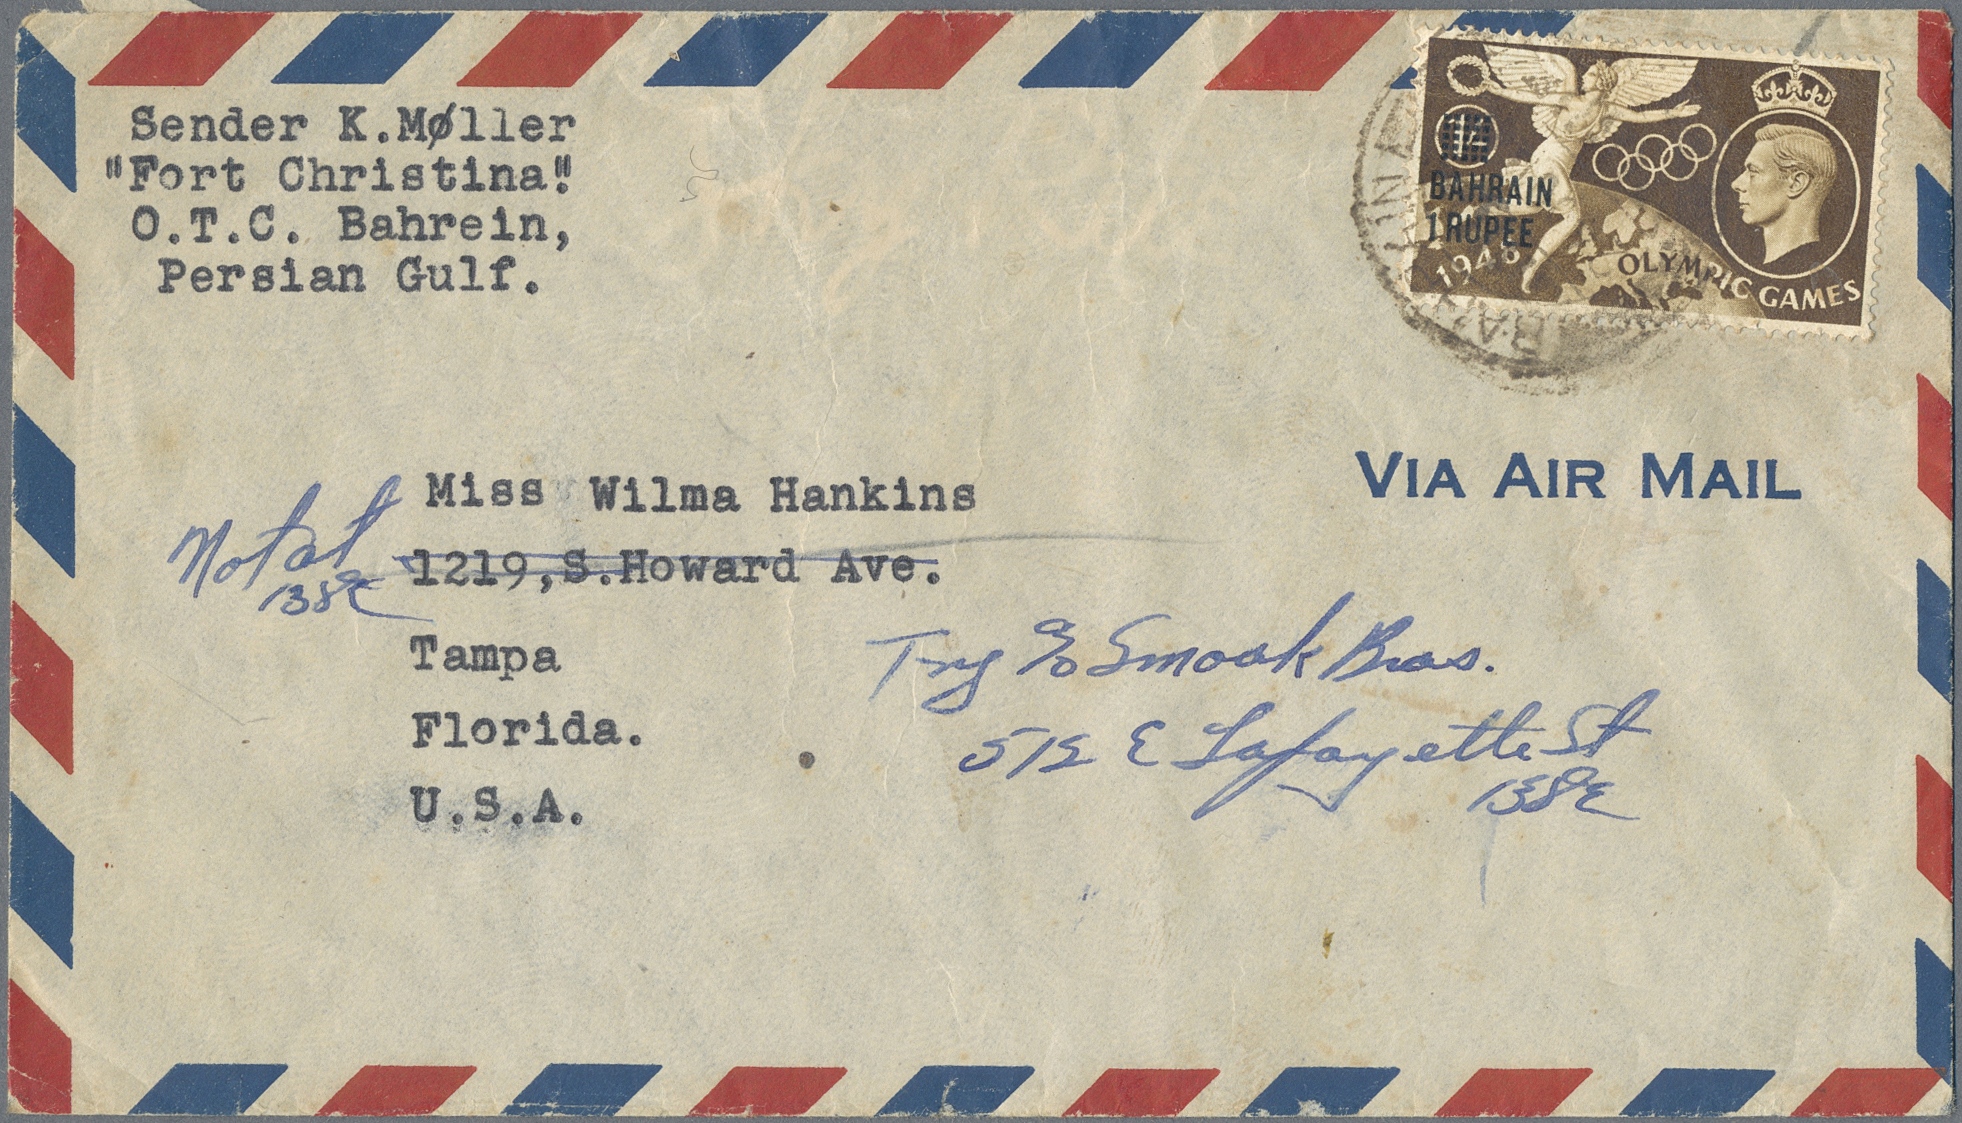 Lot 38041 - bahrain  -  Auktionshaus Christoph Gärtner GmbH & Co. KG Sale #43 Collection Peter Zgonc - German Occupations WWII | Day 7